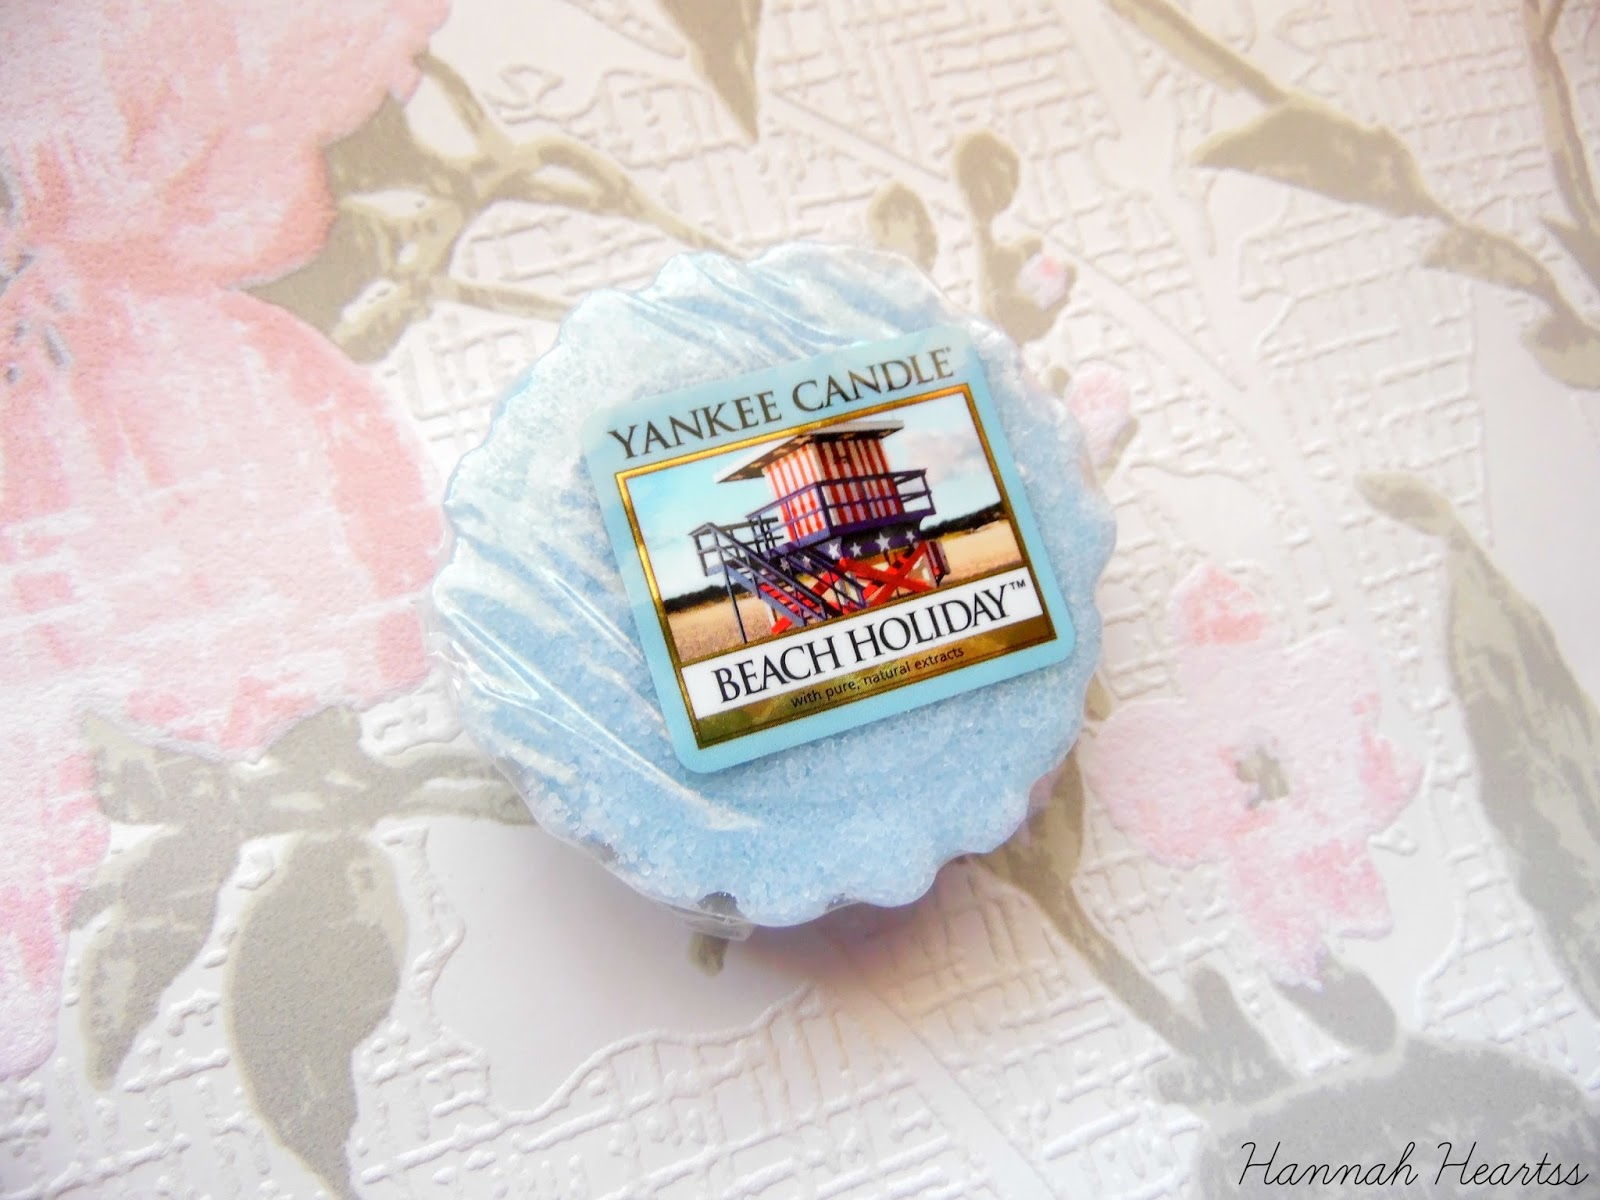 Yankee Candle Beach Holiday Tart Review